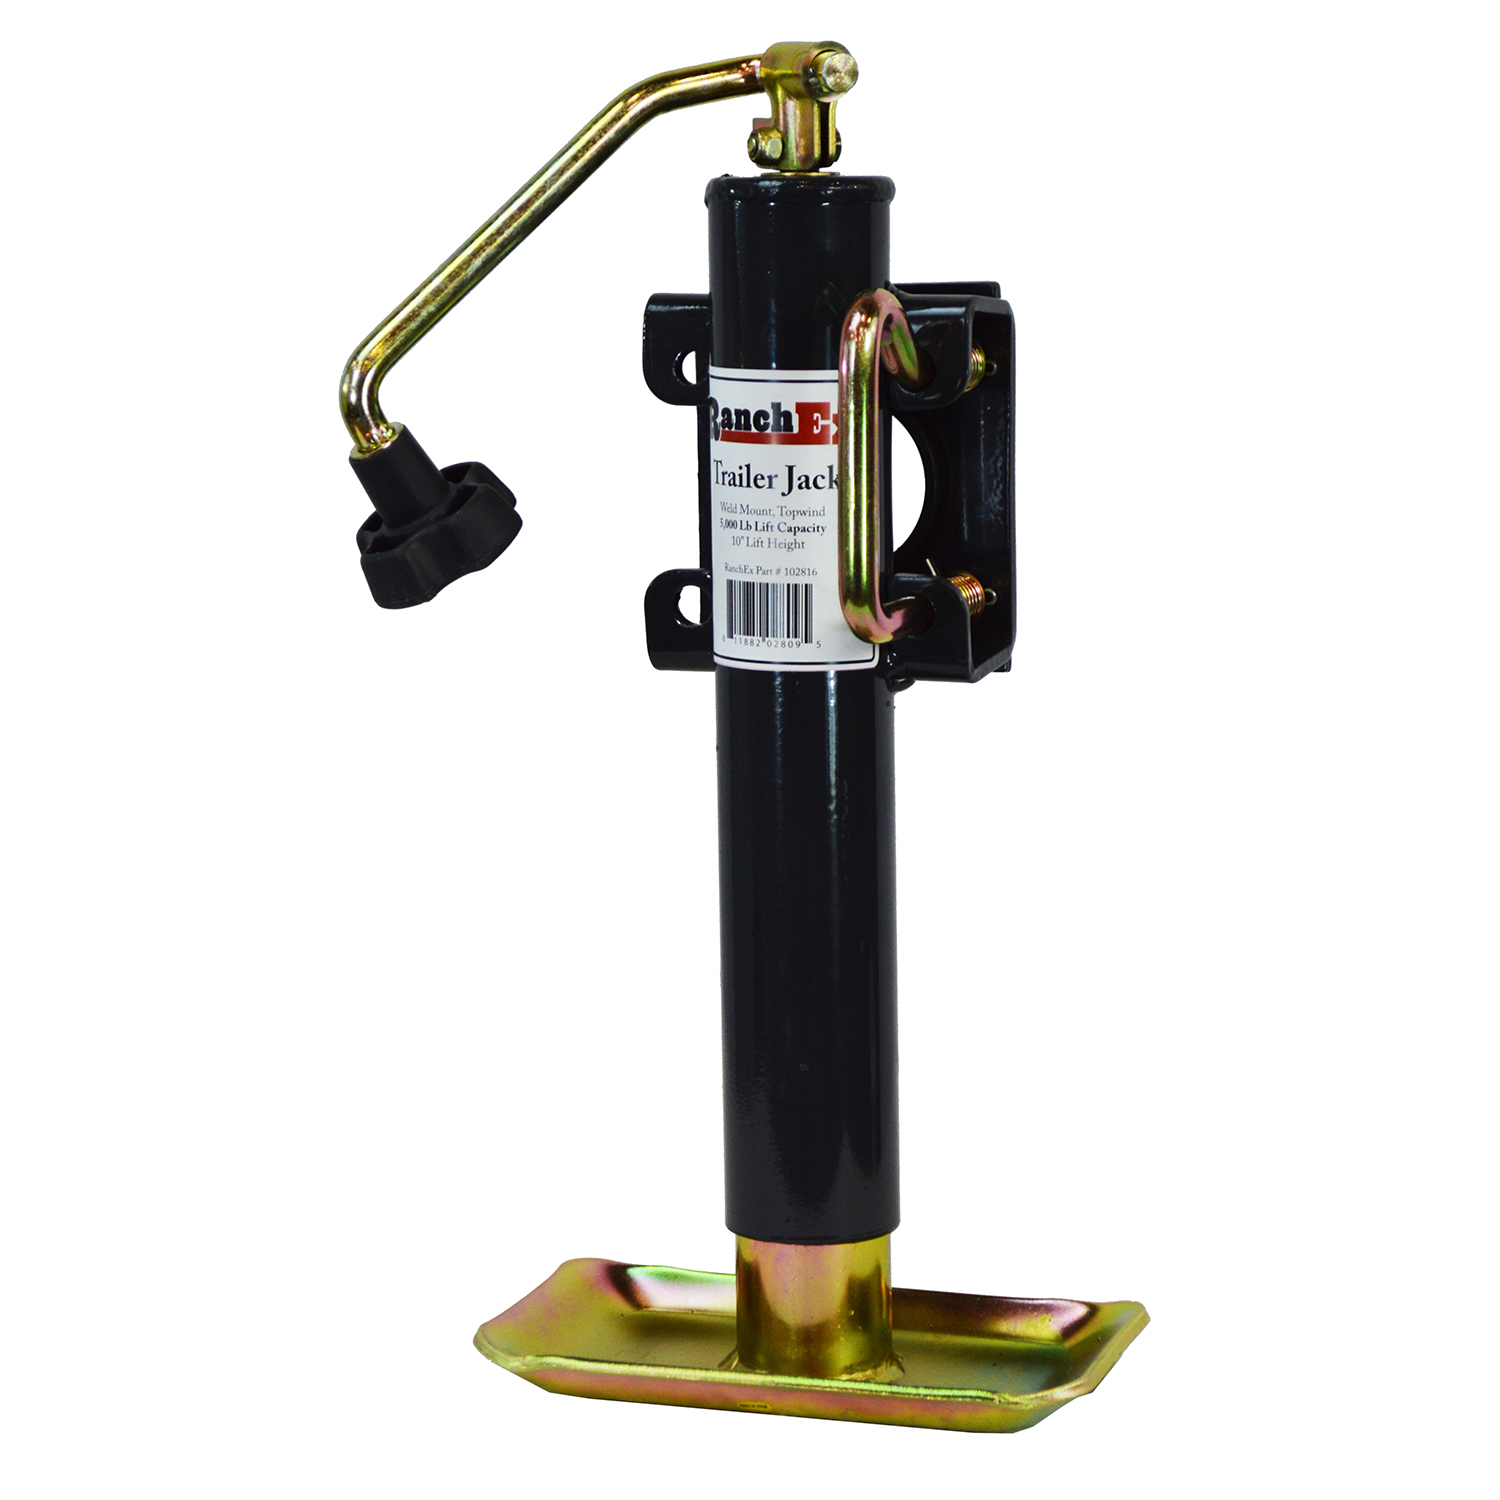 """RanchEx Flange (weld) Mount Top wind Trailer Jack, 5,000 lb. Lift Capacity, 10"""" Lift Height by RanchEx"""